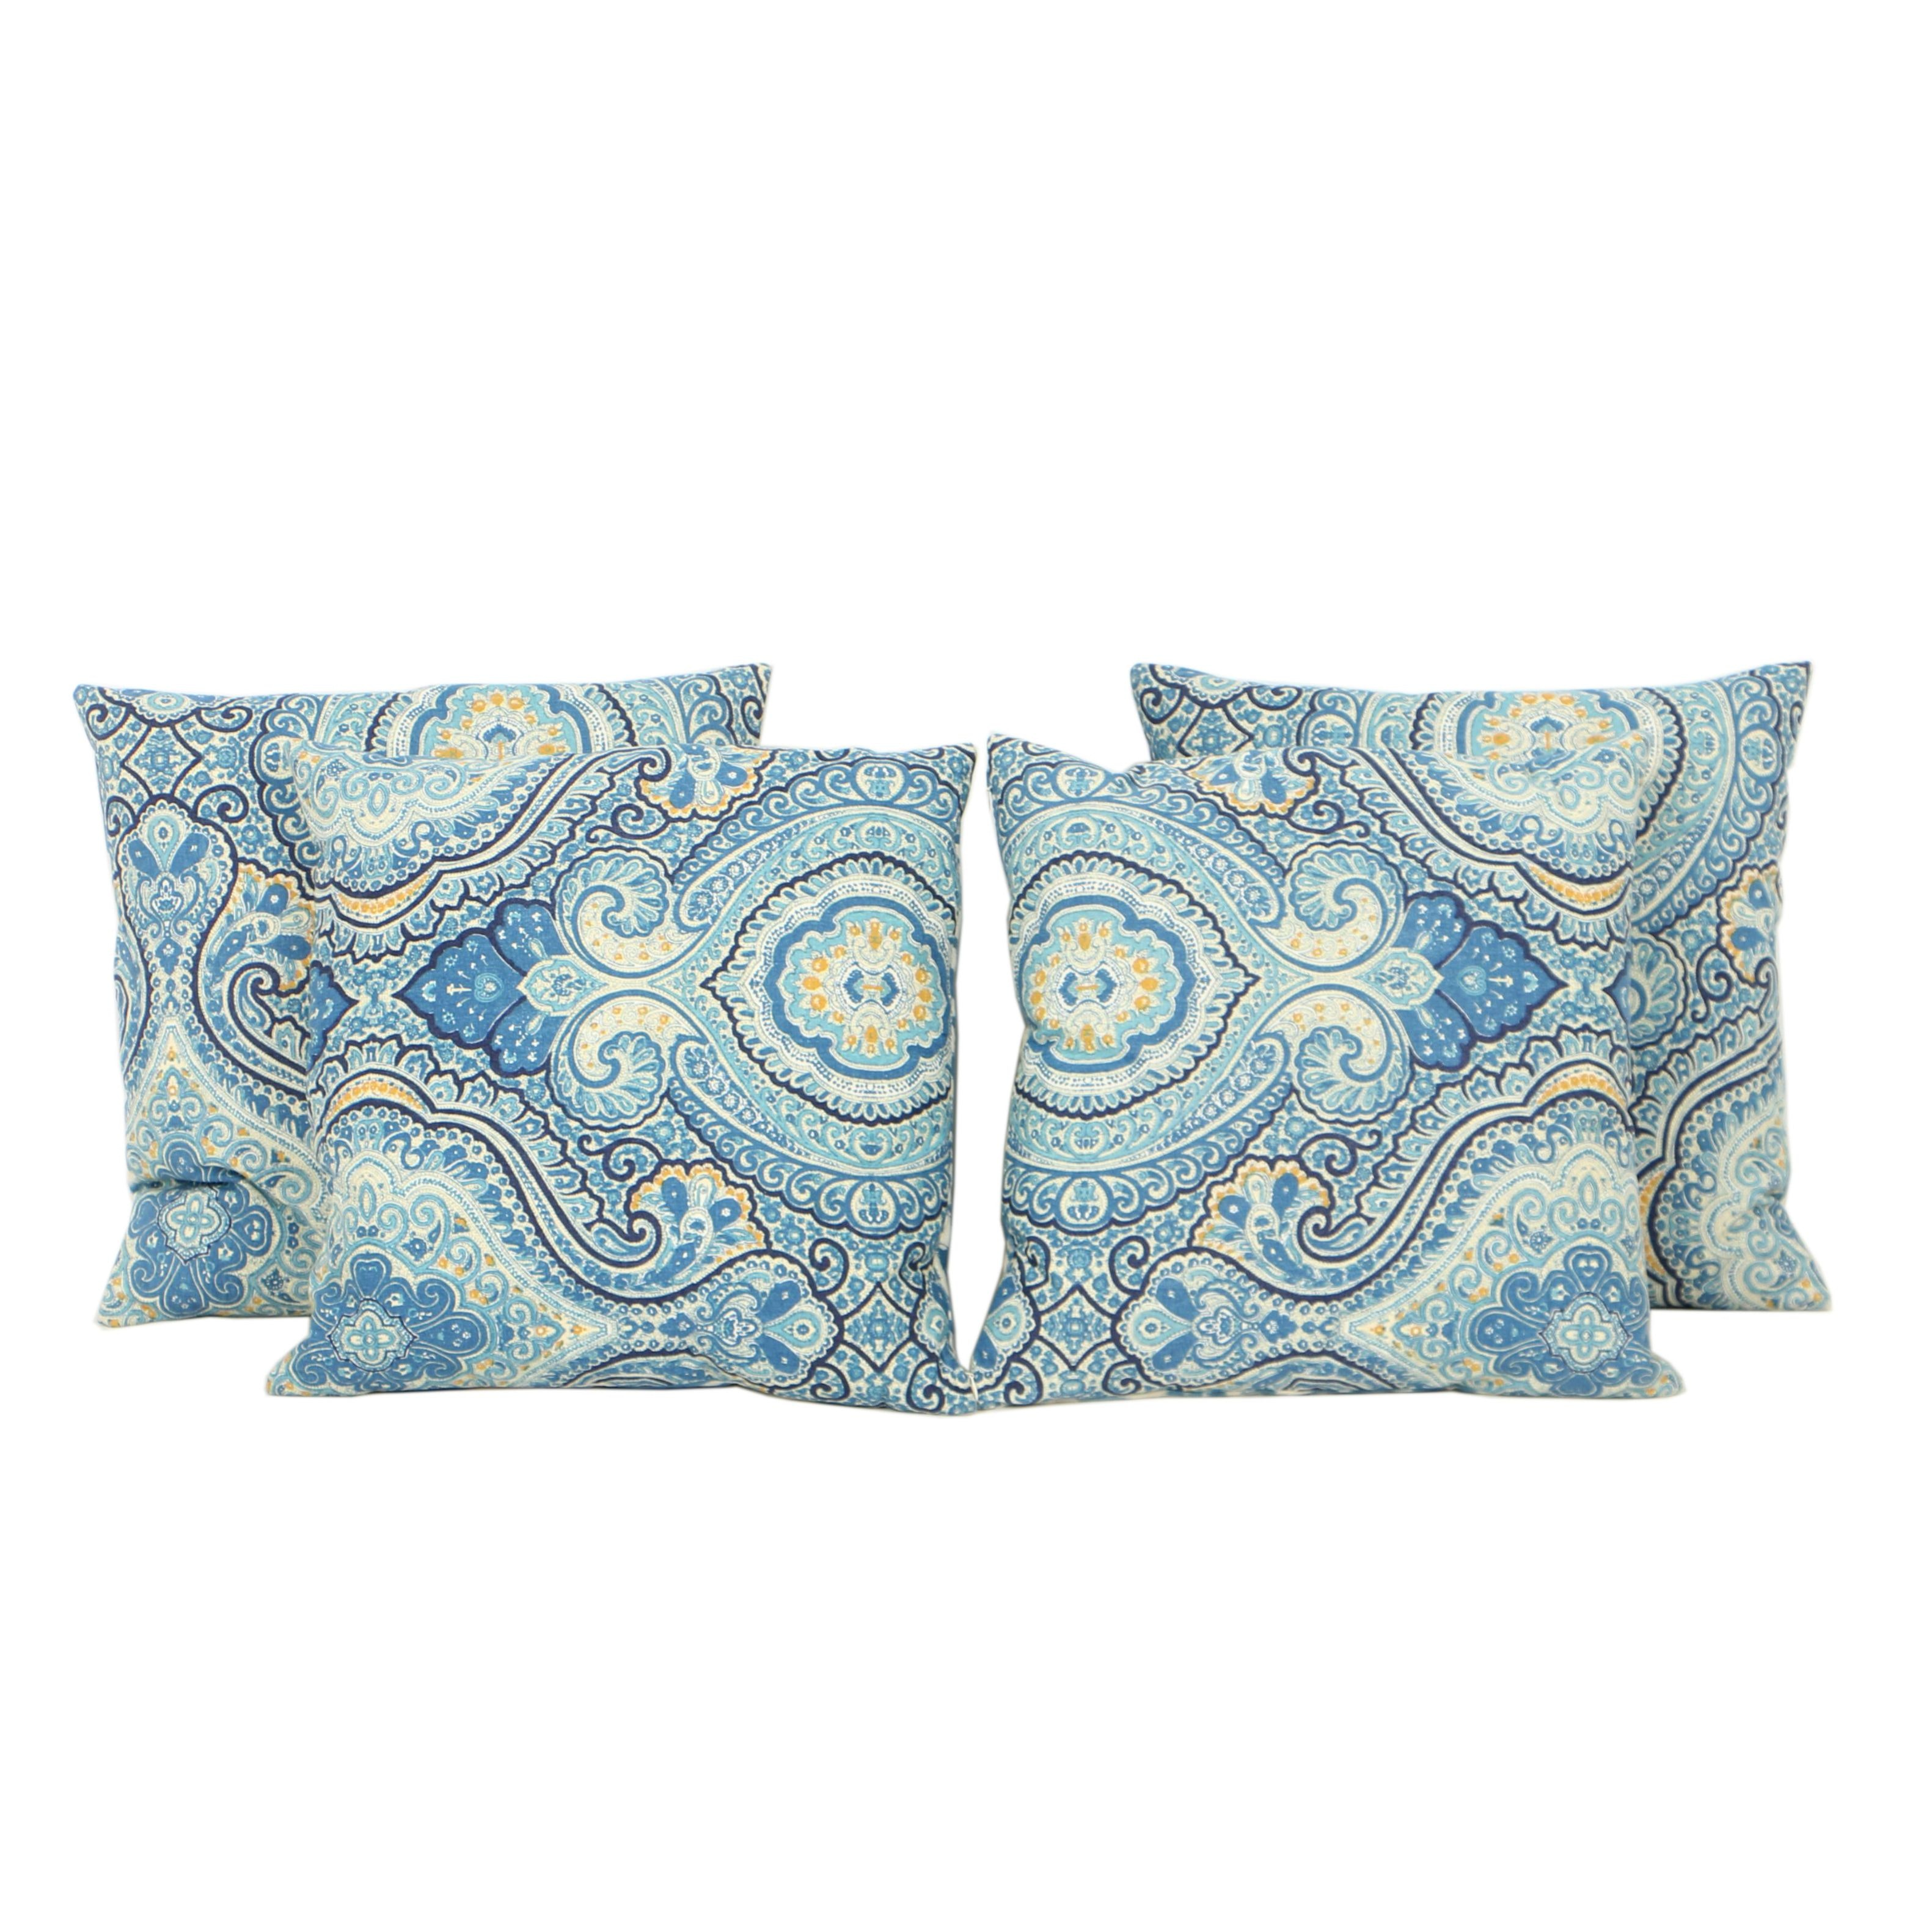 Four Decorative Blue and White Ikat Pattern Feather Filled Pillows